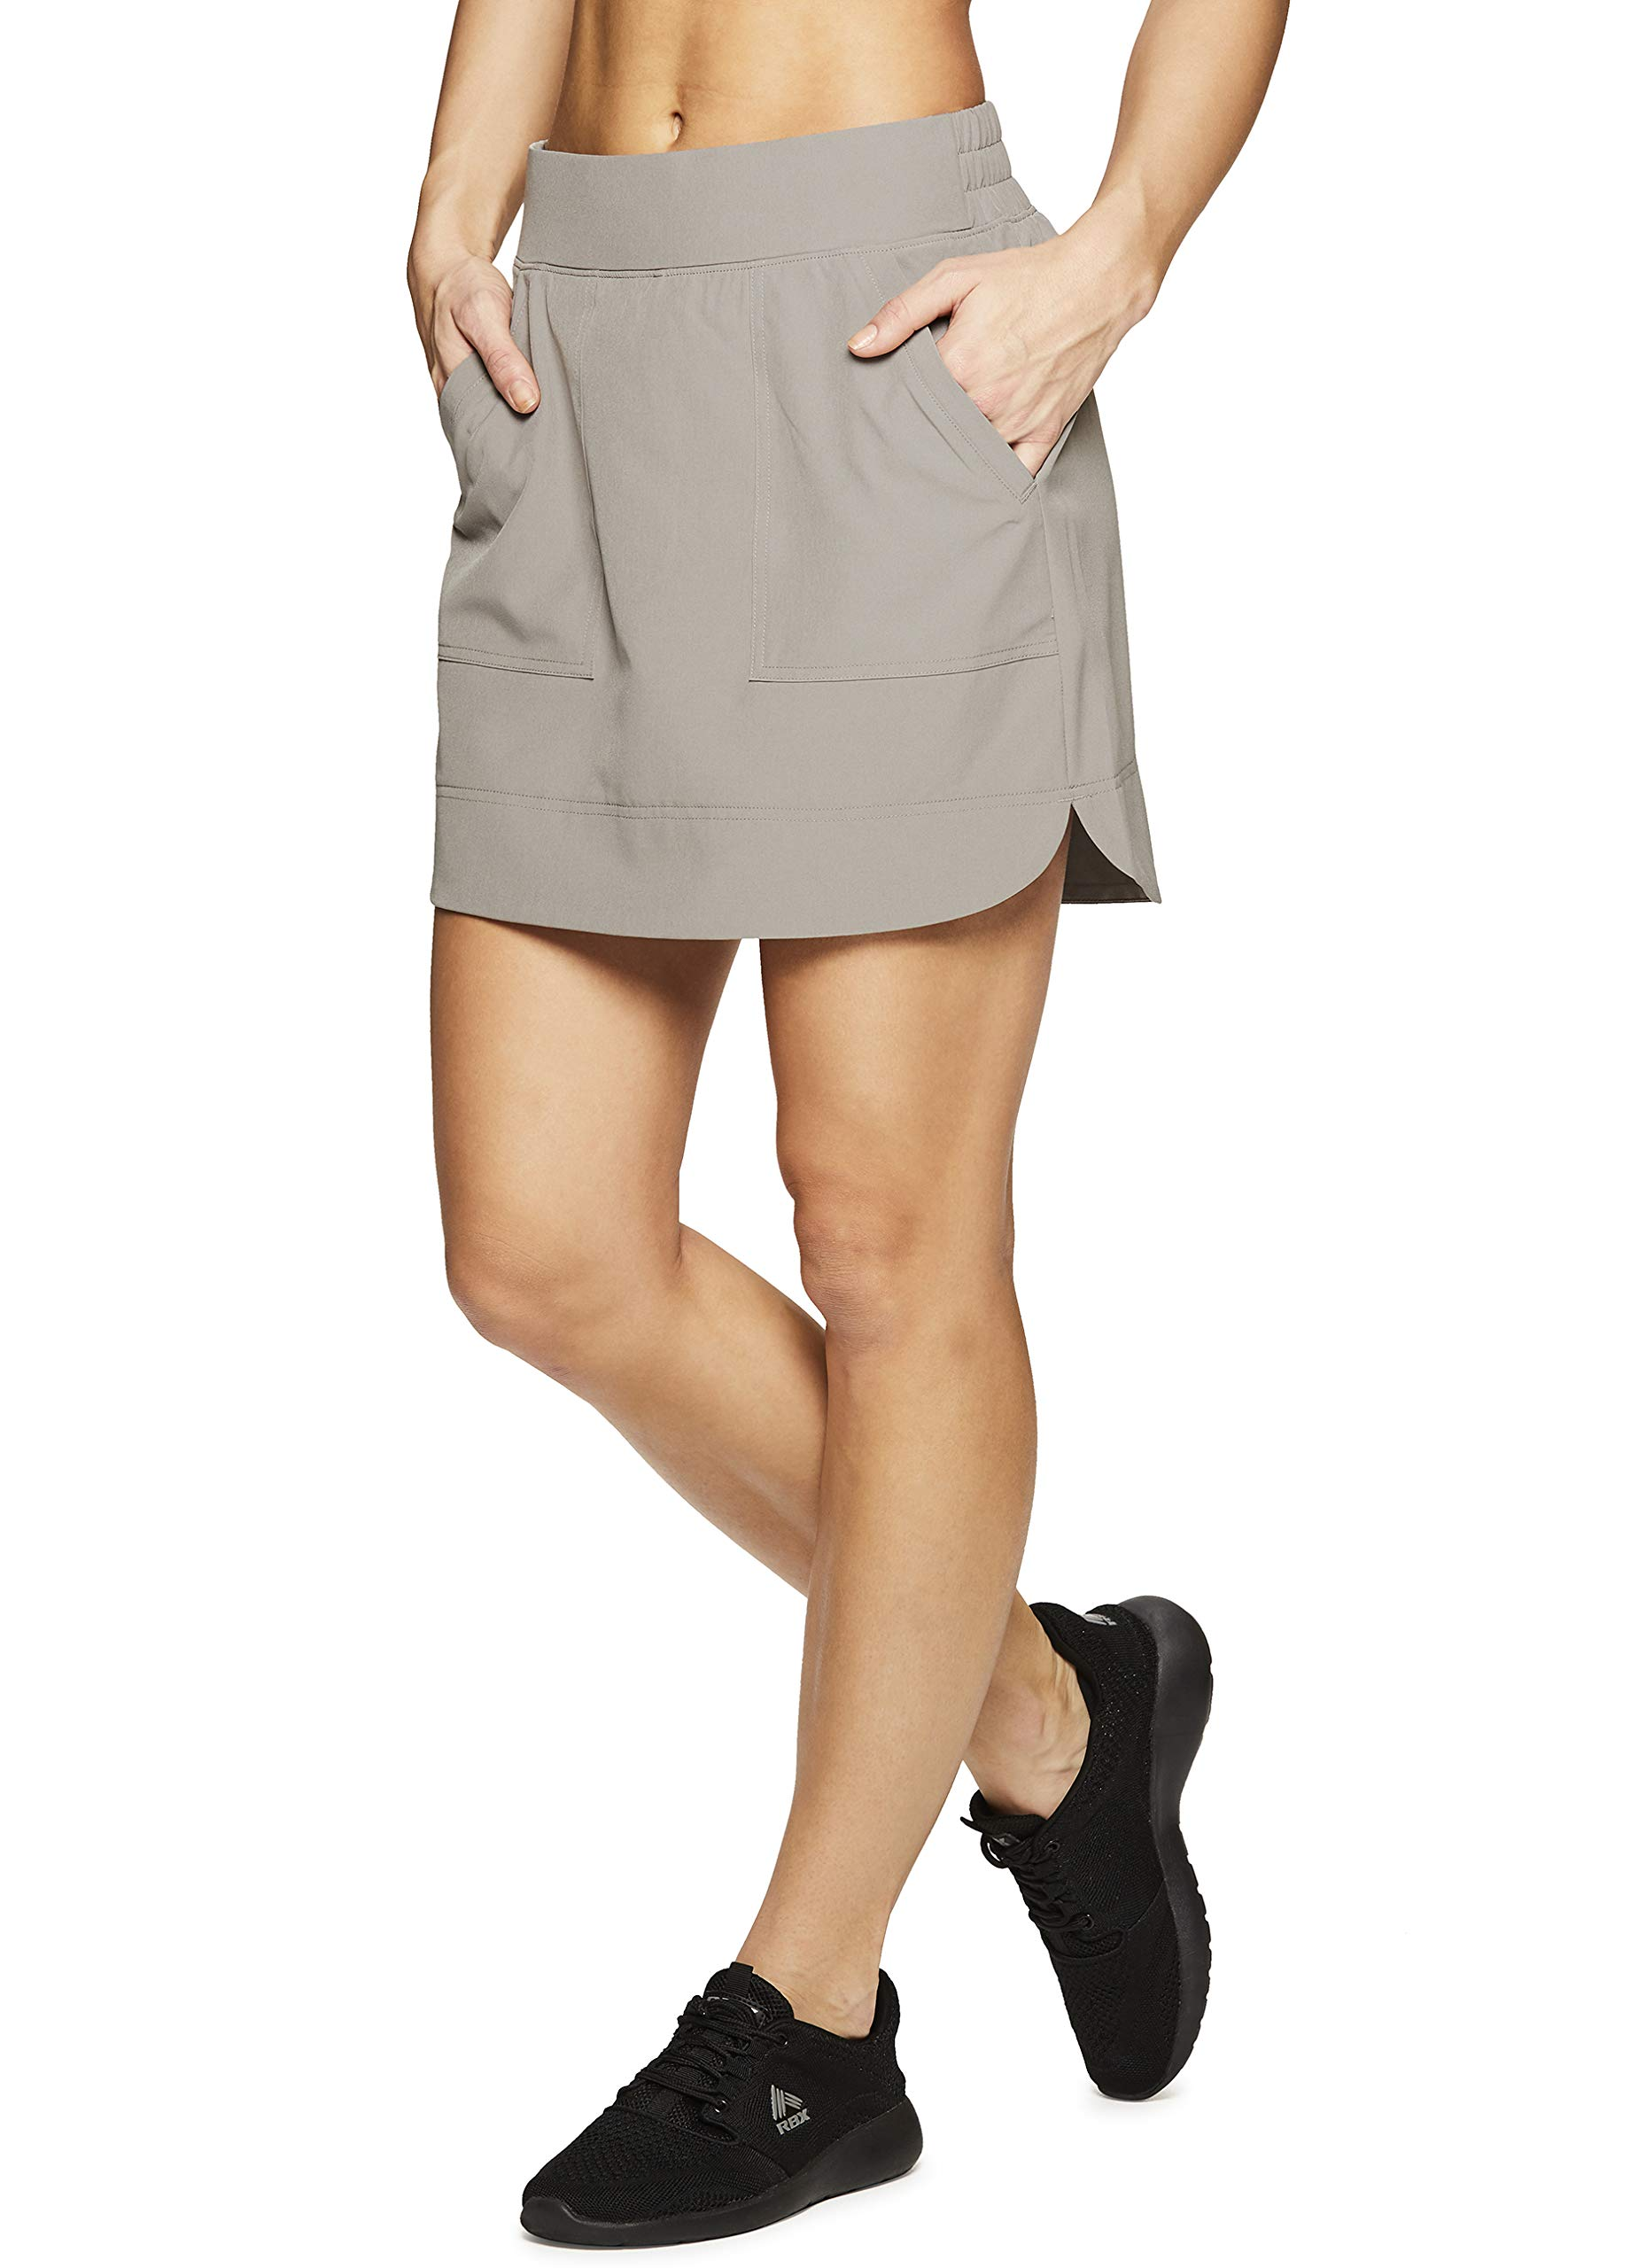 RBX Active Women's Golf/Tennis Athletic Skort with Bike Shorts and Pockets Spring Taupe S